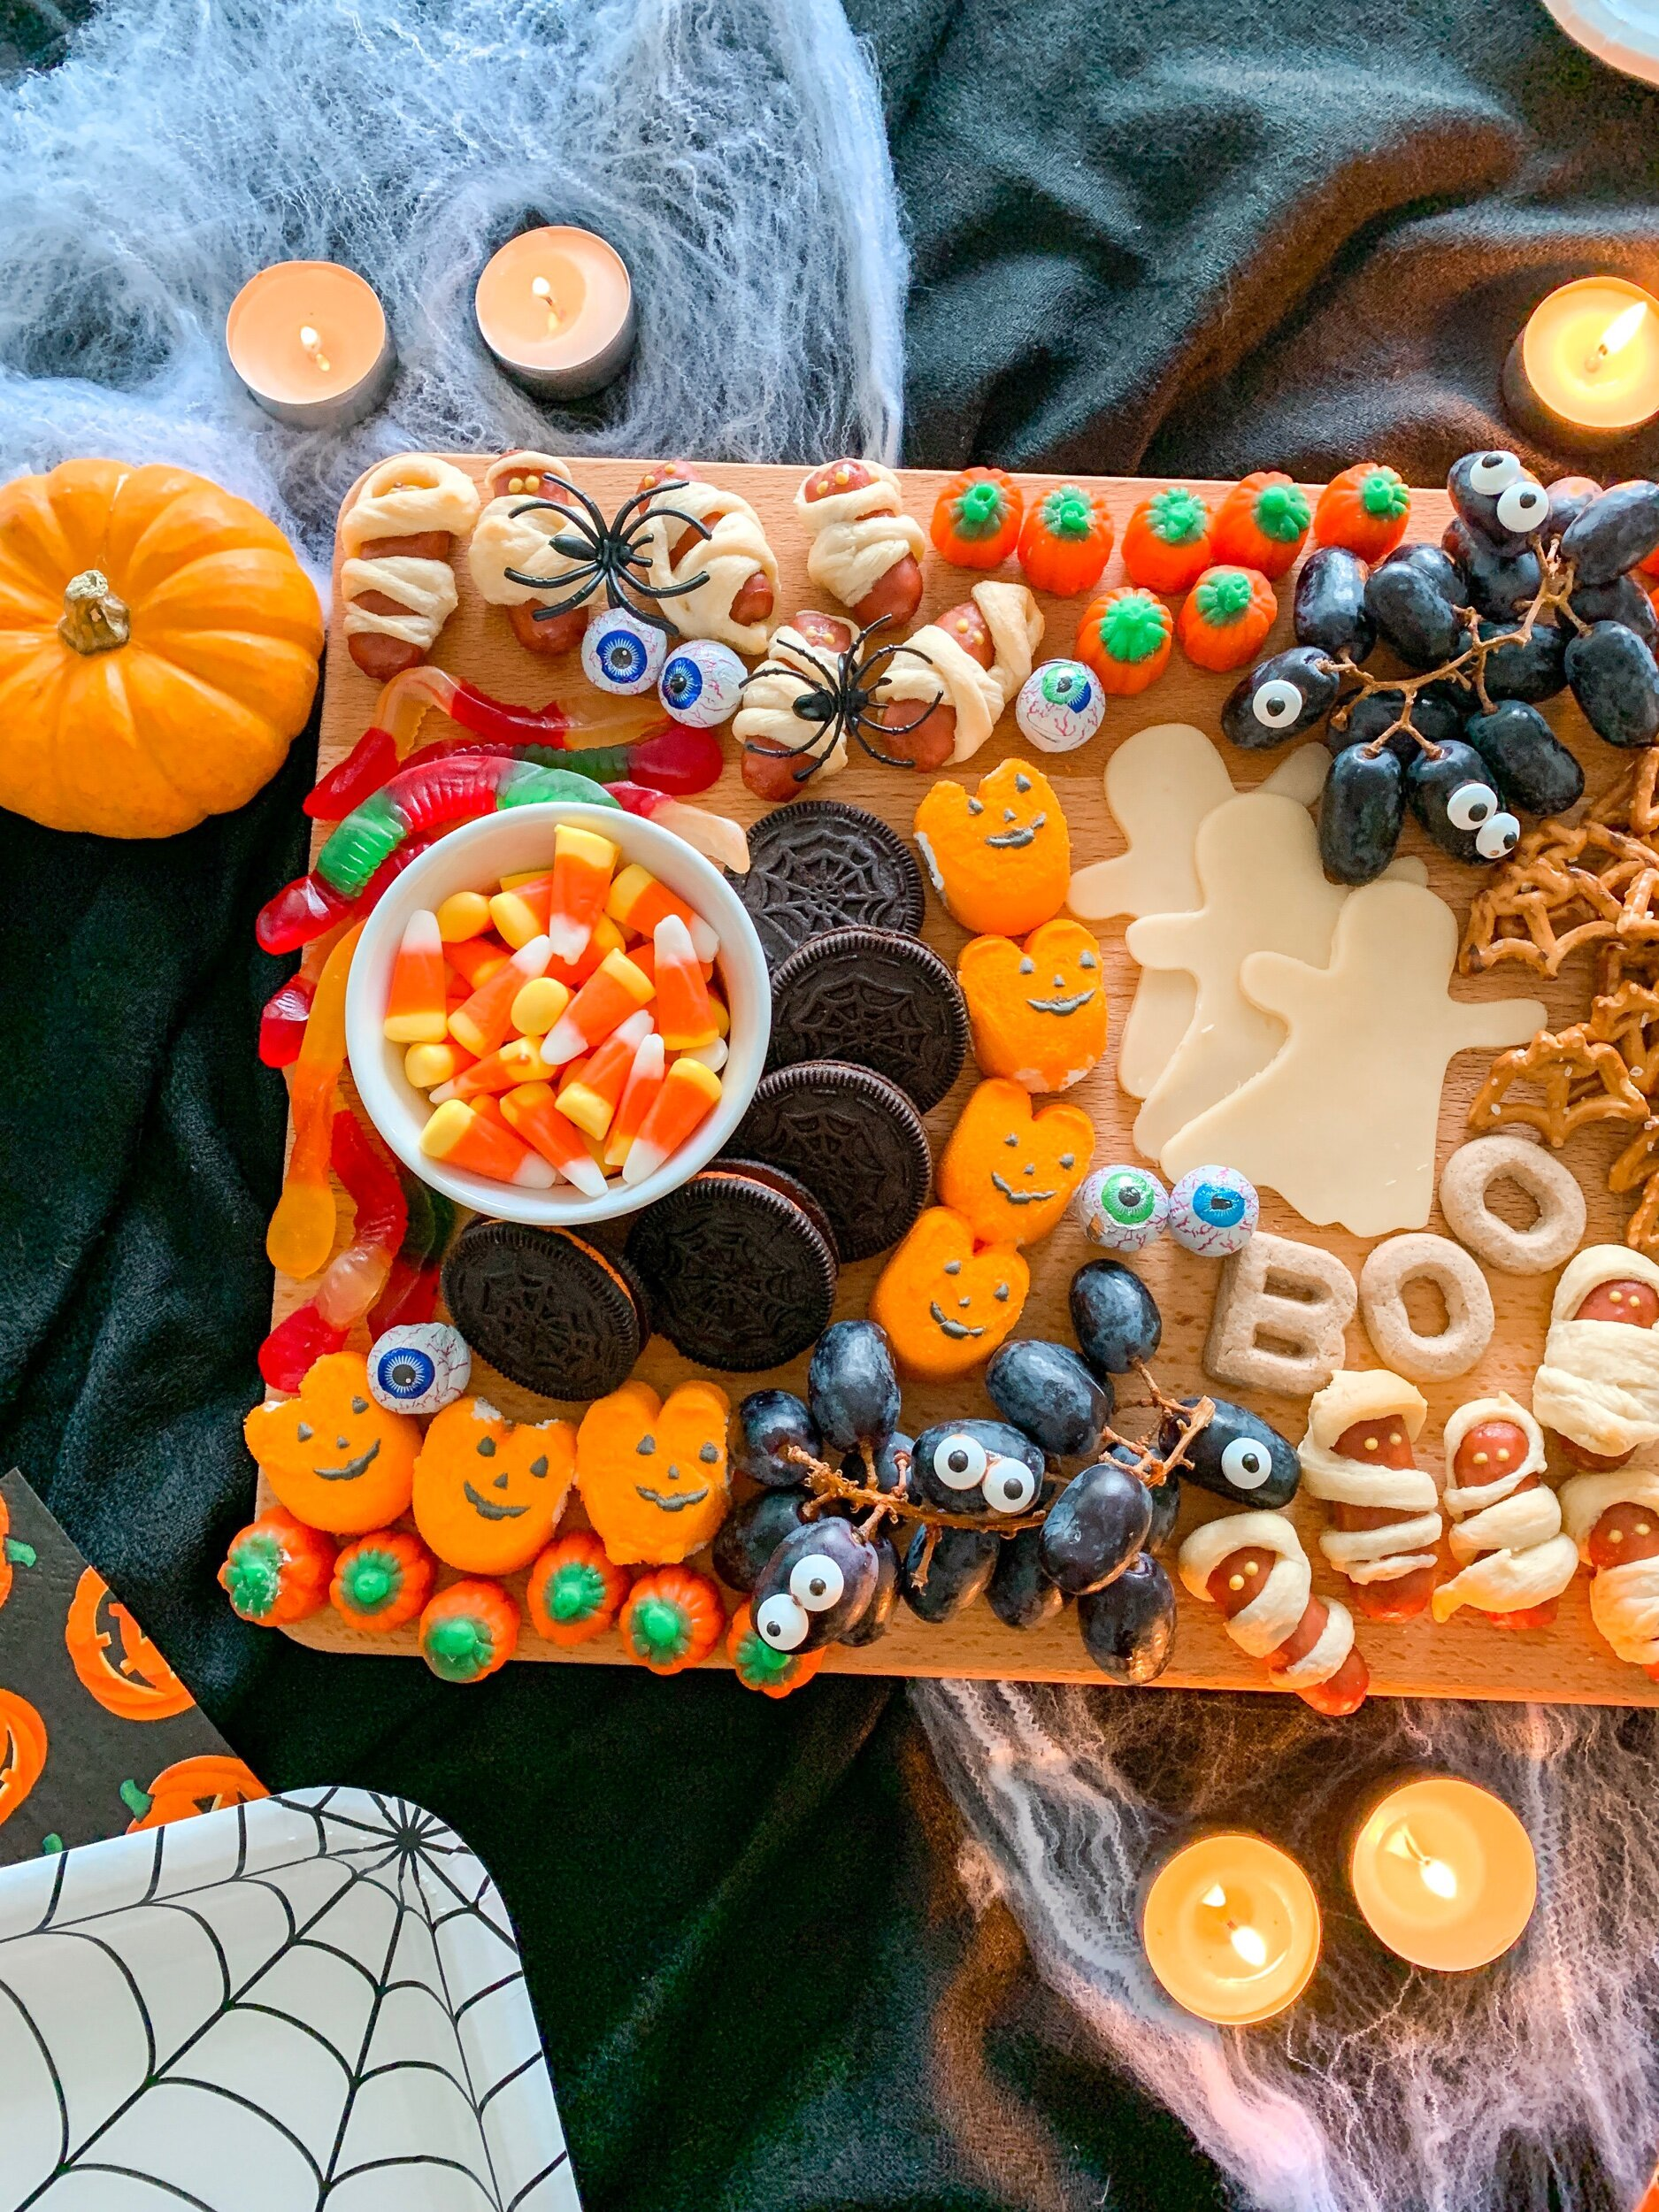 My favorite touch for a Halloween themed charcuterie board? Add candy eyes for a fun, monster-like feel to any treat!